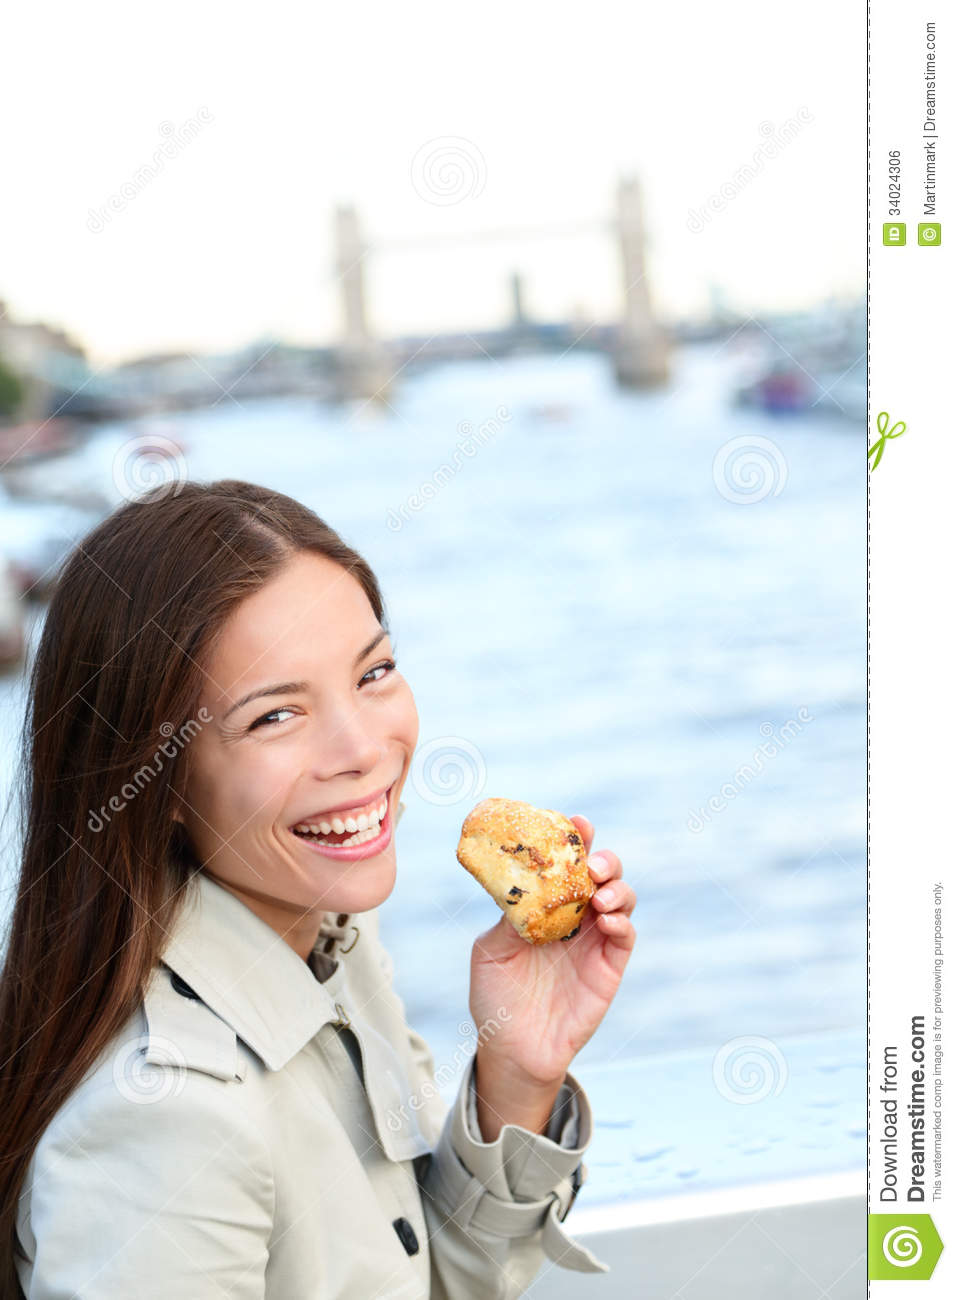 Scones - Woman Eating Scone In London Royalty Free Stock -3554